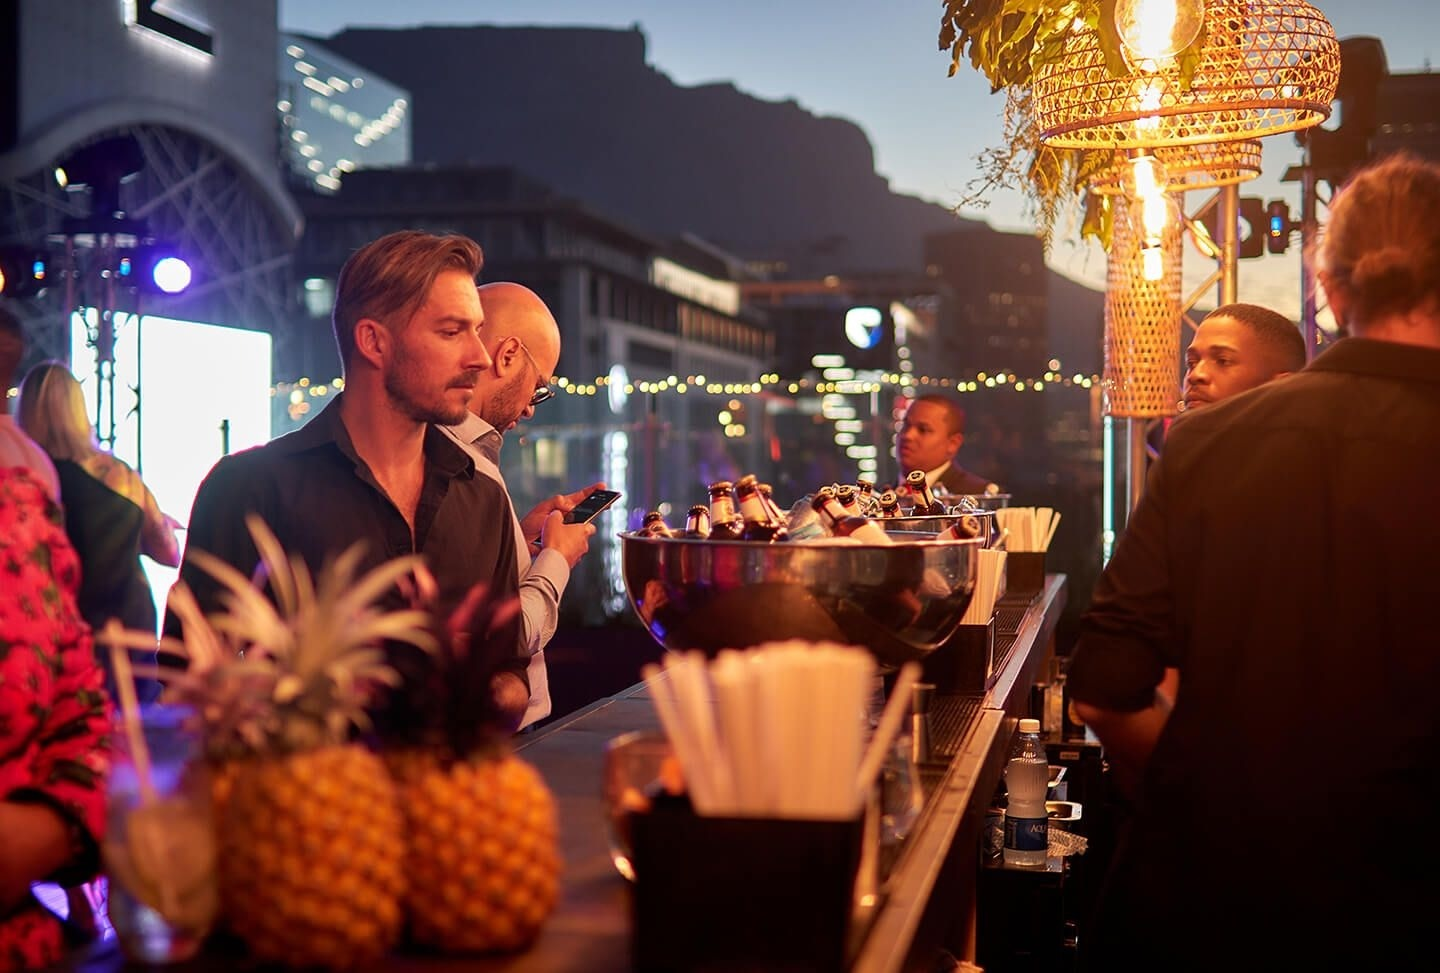 Enjoy beverages or your choice of cocktail (alcoholic or non-alcoholic) by our team of mixologists as they enjoy views of Cape Town's vibrant skyline and picturesque Table Mountain when selecting one of the Summer Nights promotion packages.